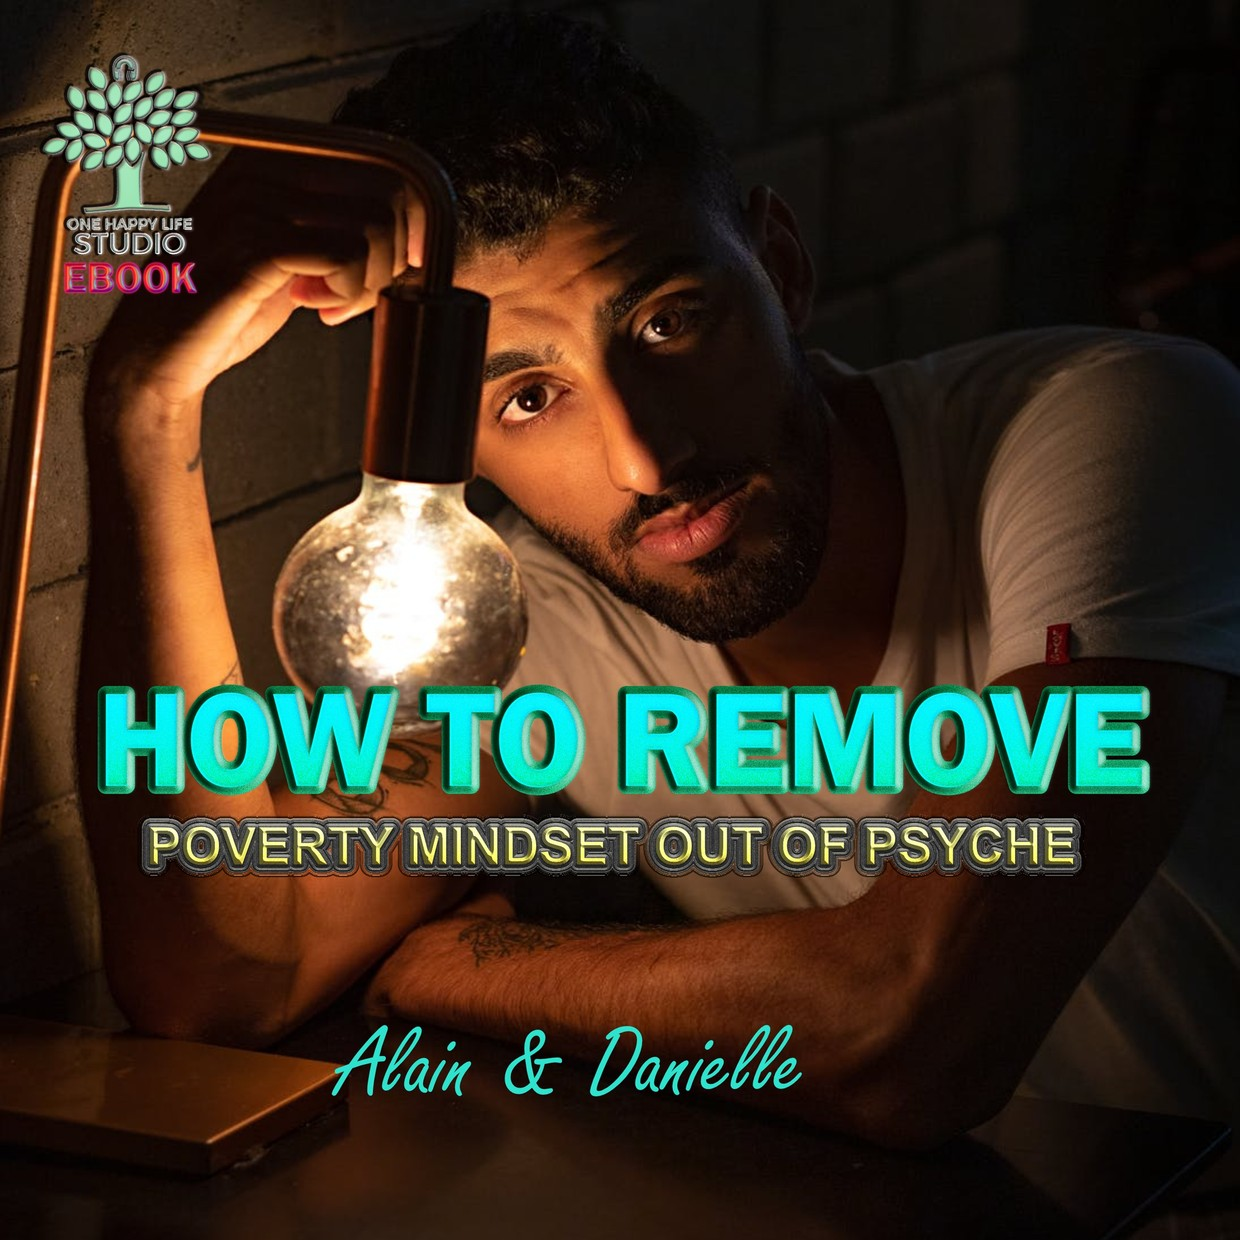 How To Remove Poverty Mindset Out Of Psyche